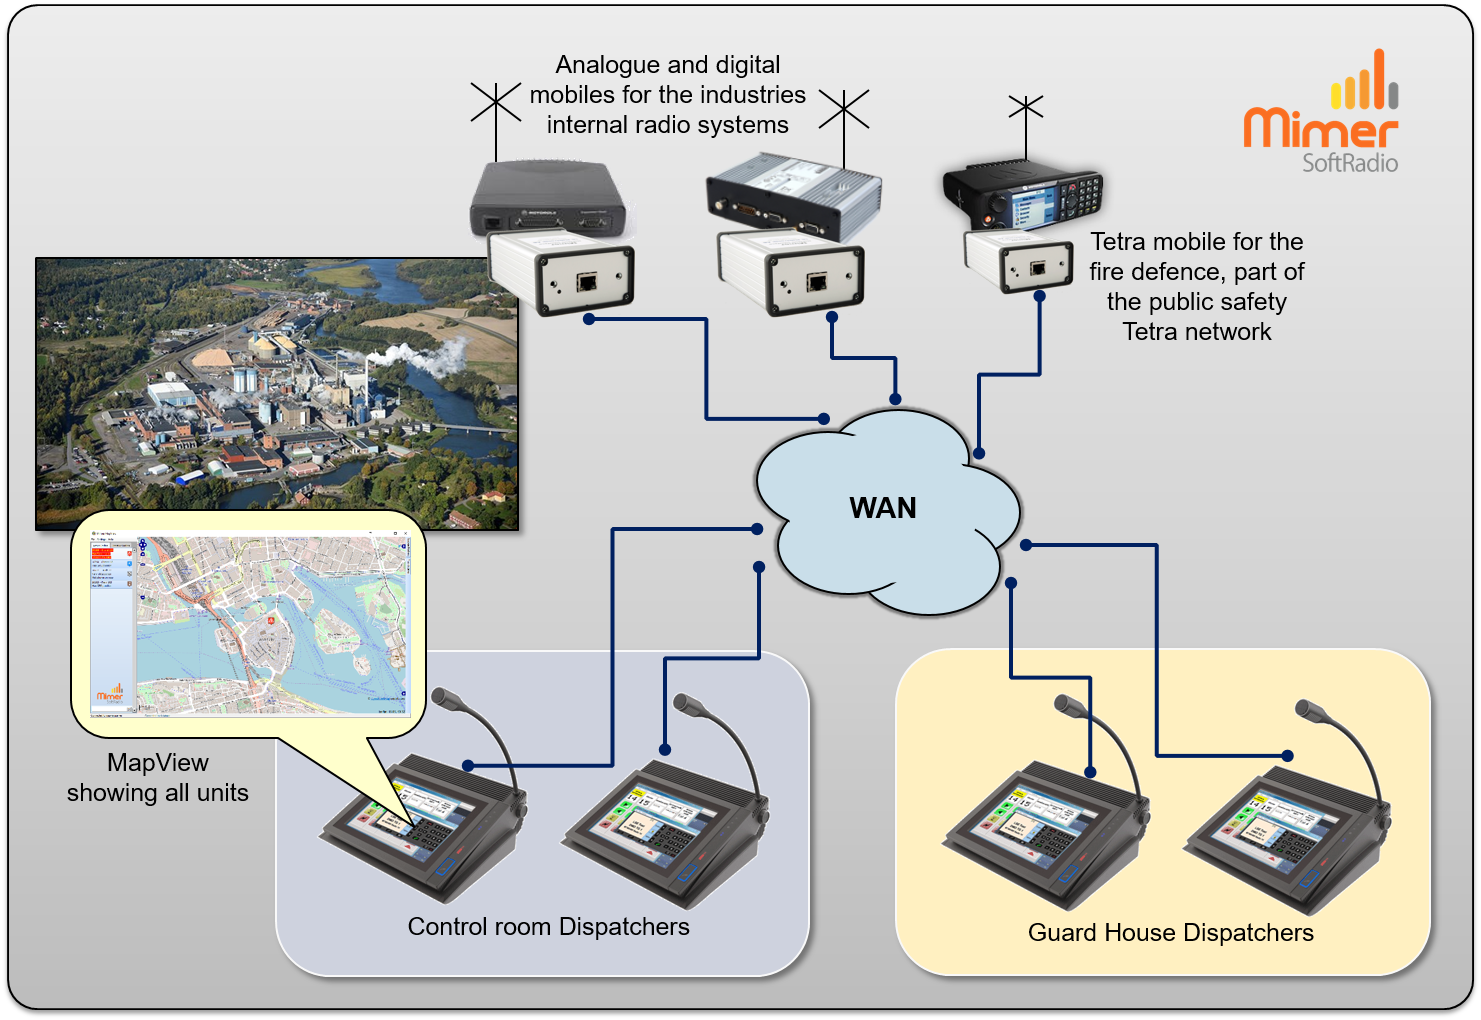 Mixed radio systems at an industry including Mimer MapView